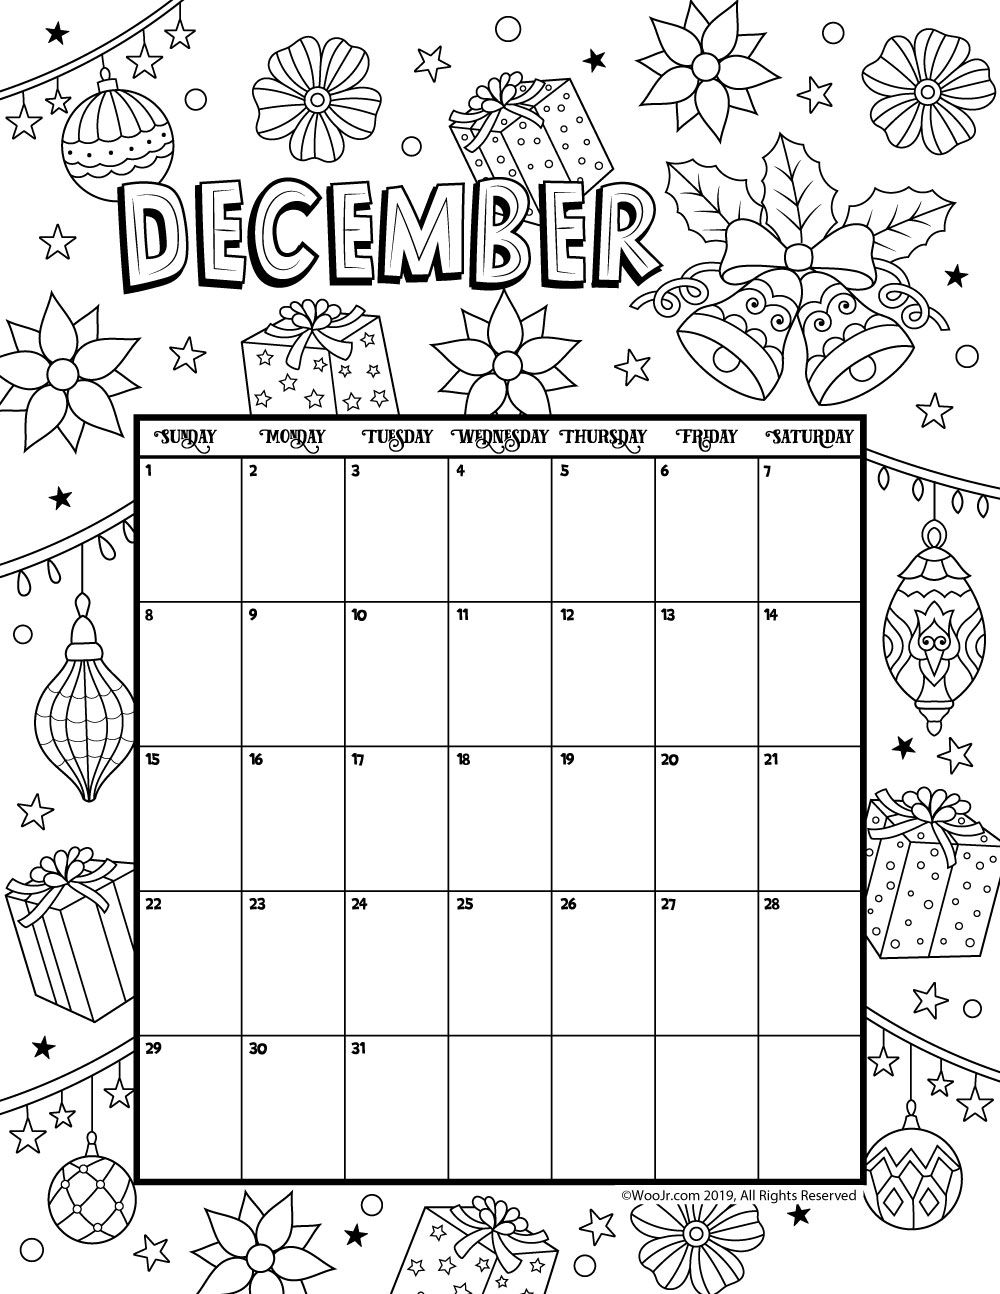 Printable Kids Calendar 2019 December December 2019 Coloring Calendar | adult coloring pages | November